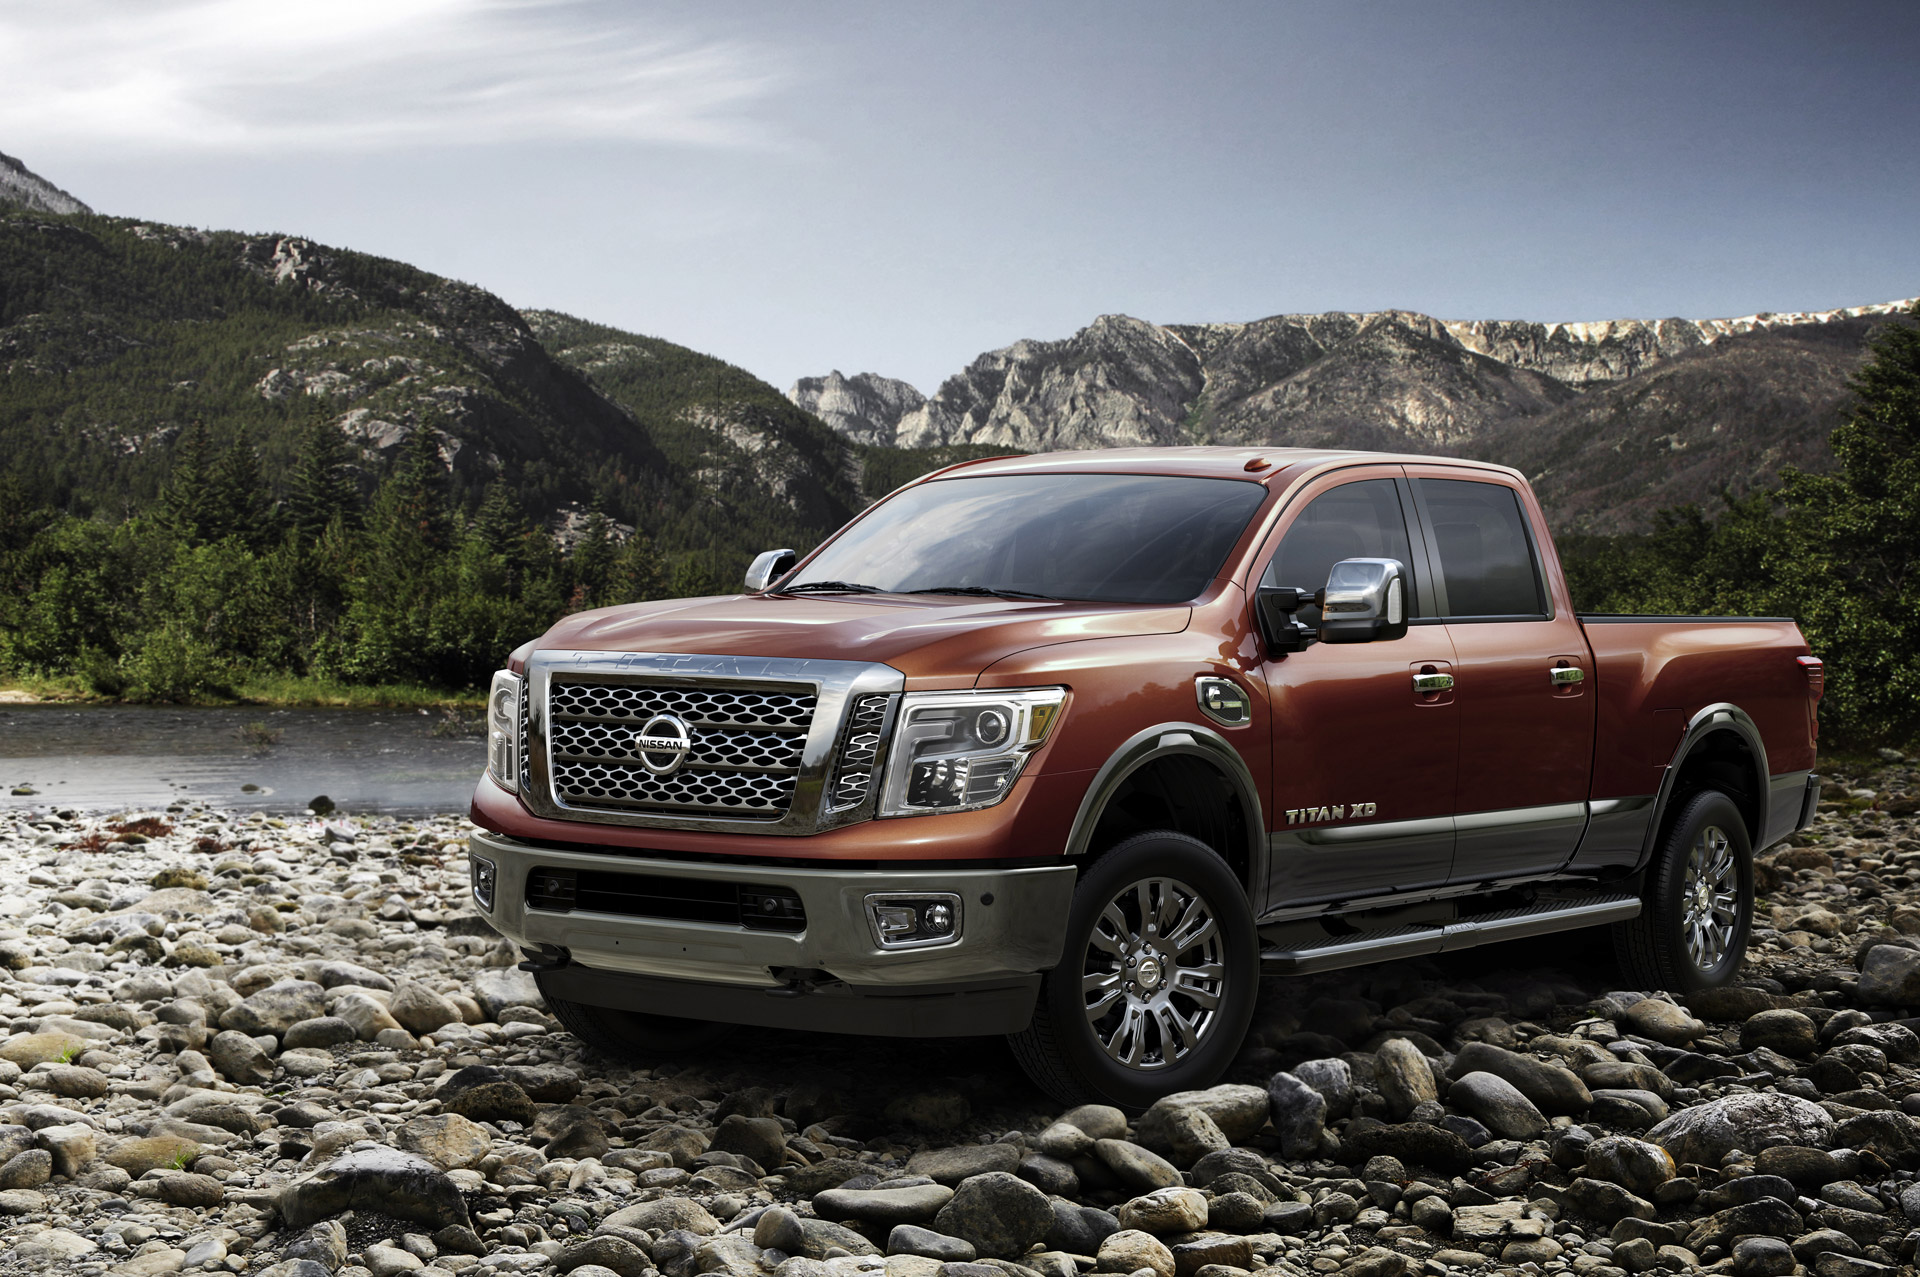 2016 nissan titan diesel xd recalled for fuel tank flaw. Black Bedroom Furniture Sets. Home Design Ideas